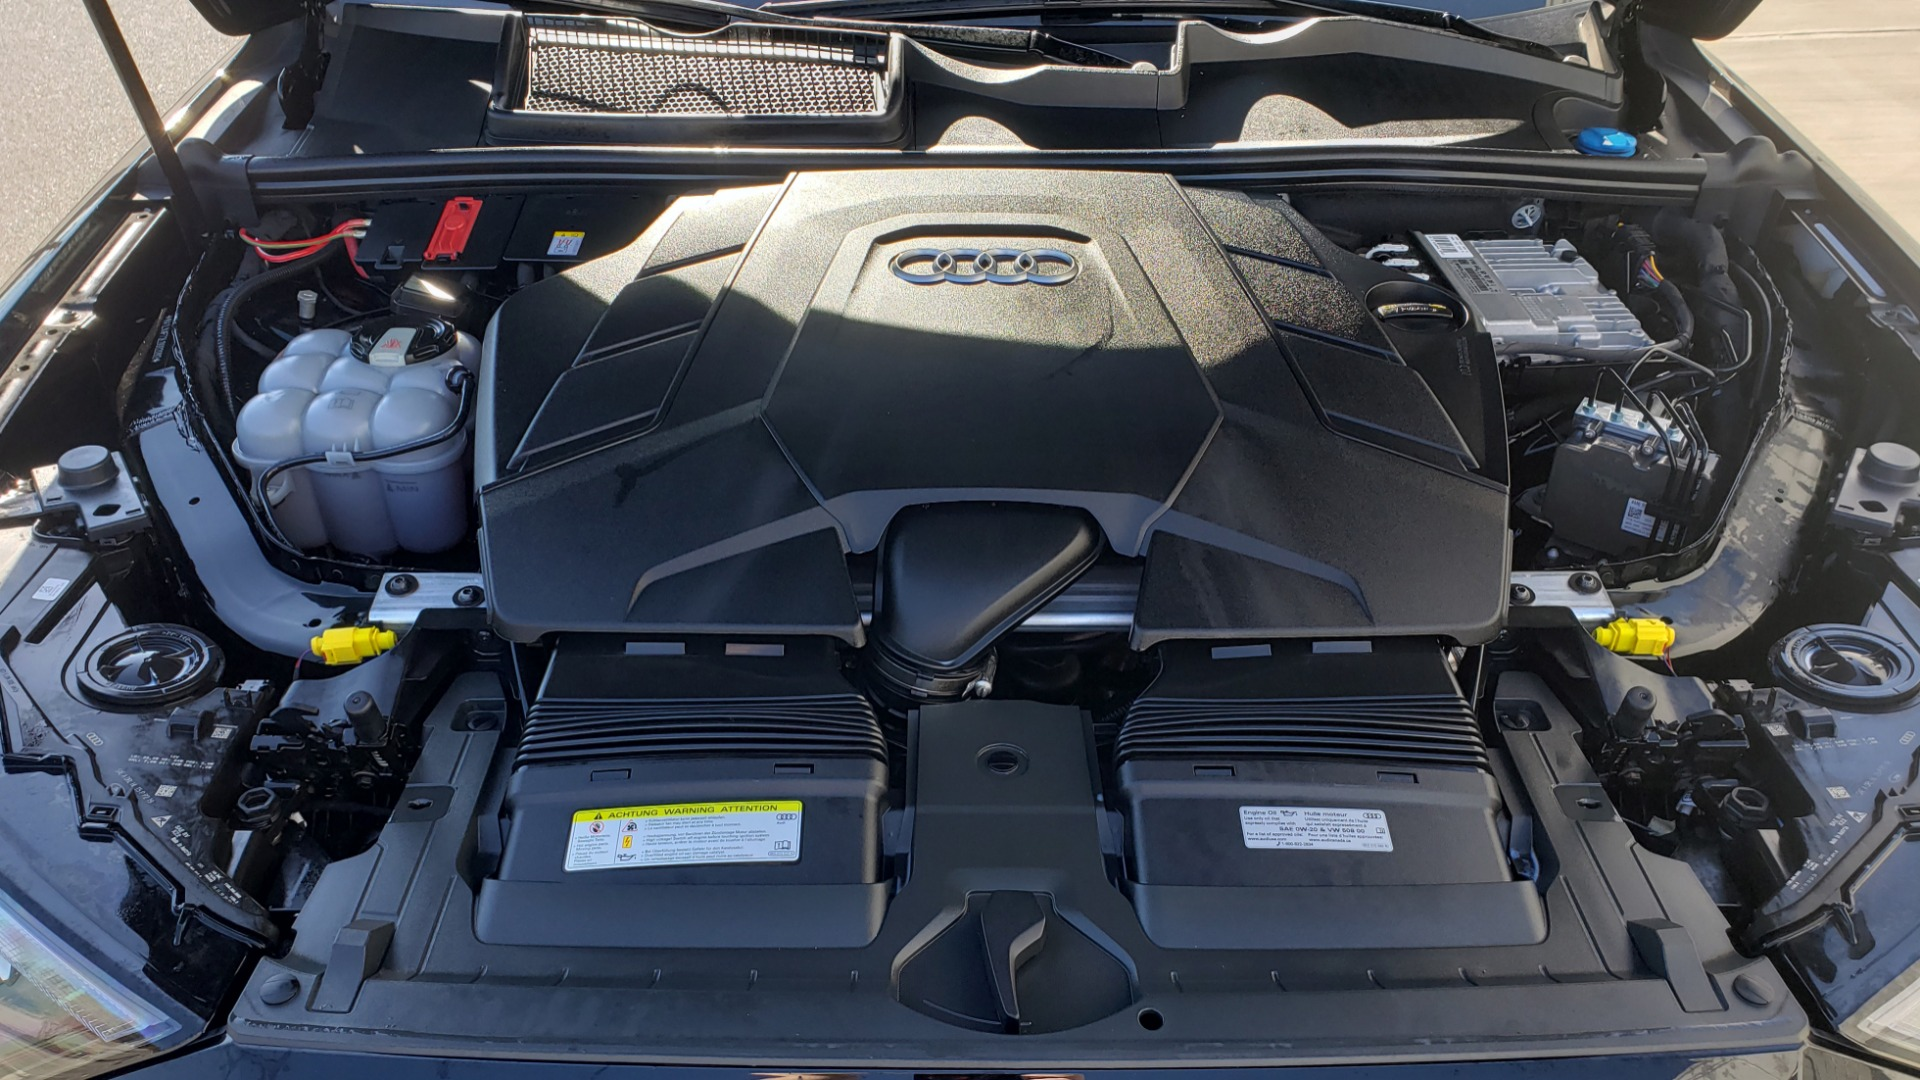 Used 2020 Audi Q7 PREMIUM PLUS / NAV / SUNROOF / 3-ROW / REARVIEW for sale Sold at Formula Imports in Charlotte NC 28227 12